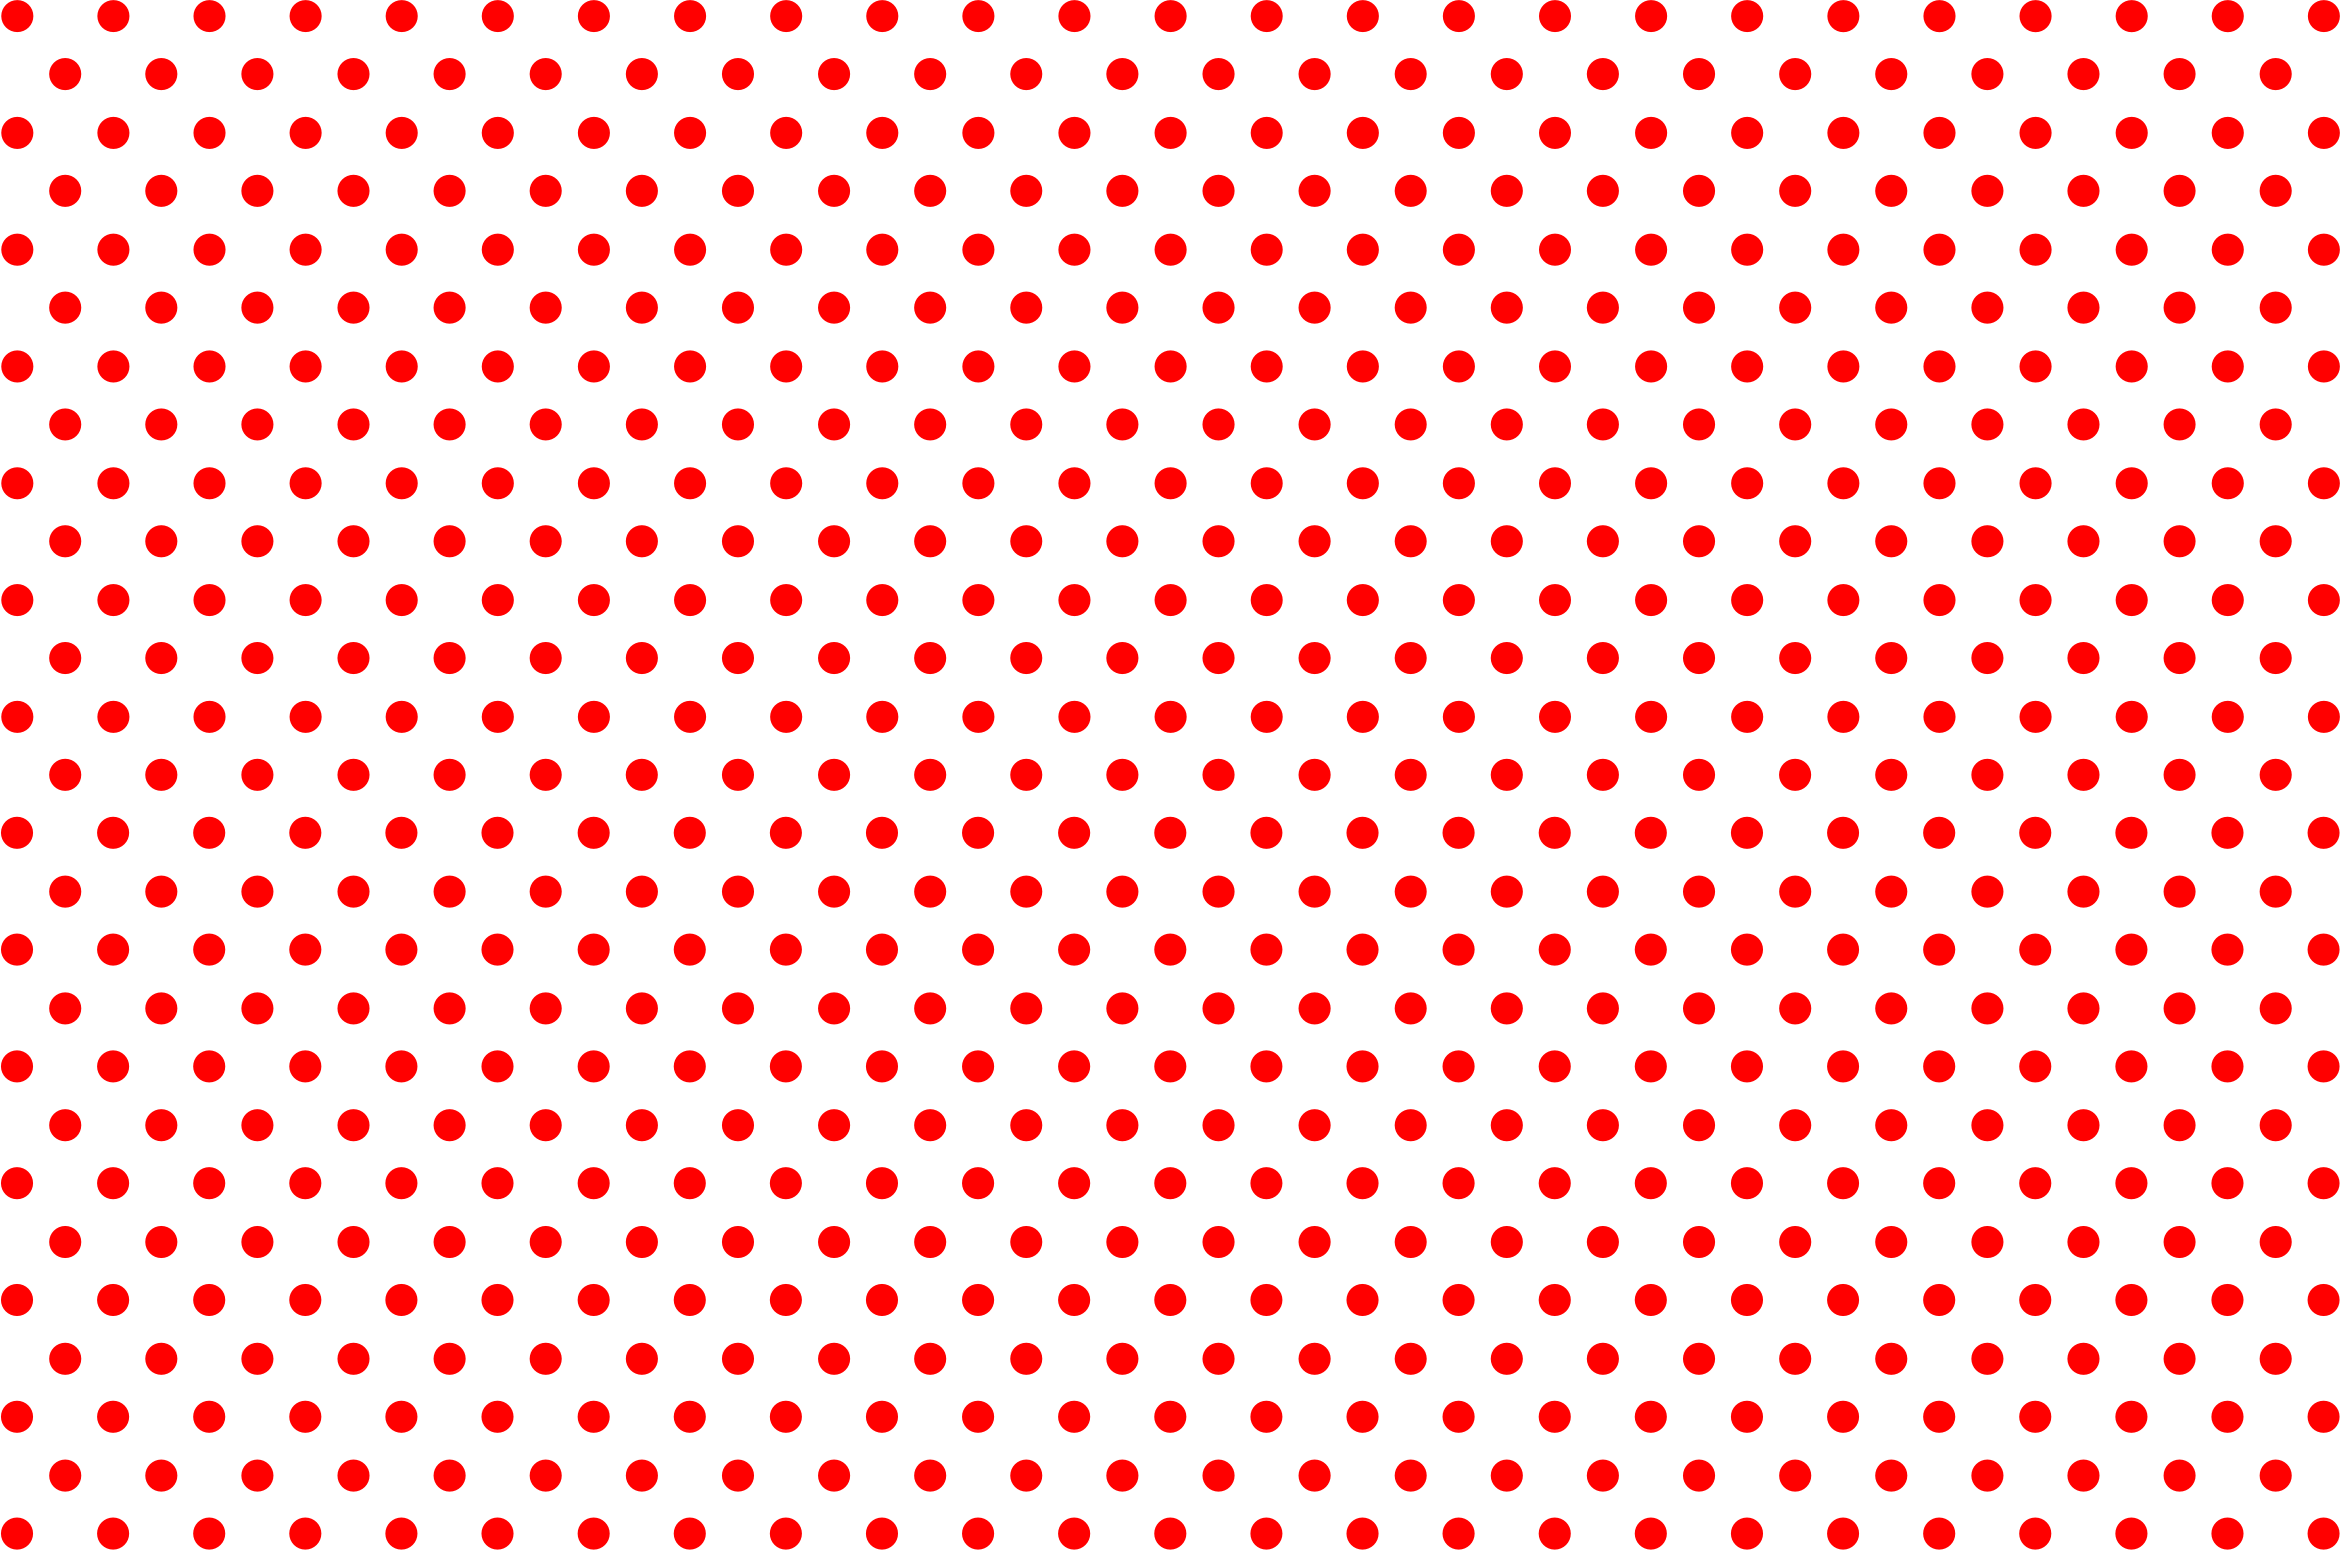 Banner Design Ideas Red Polka Dot Wallpaper Wallpapersafari